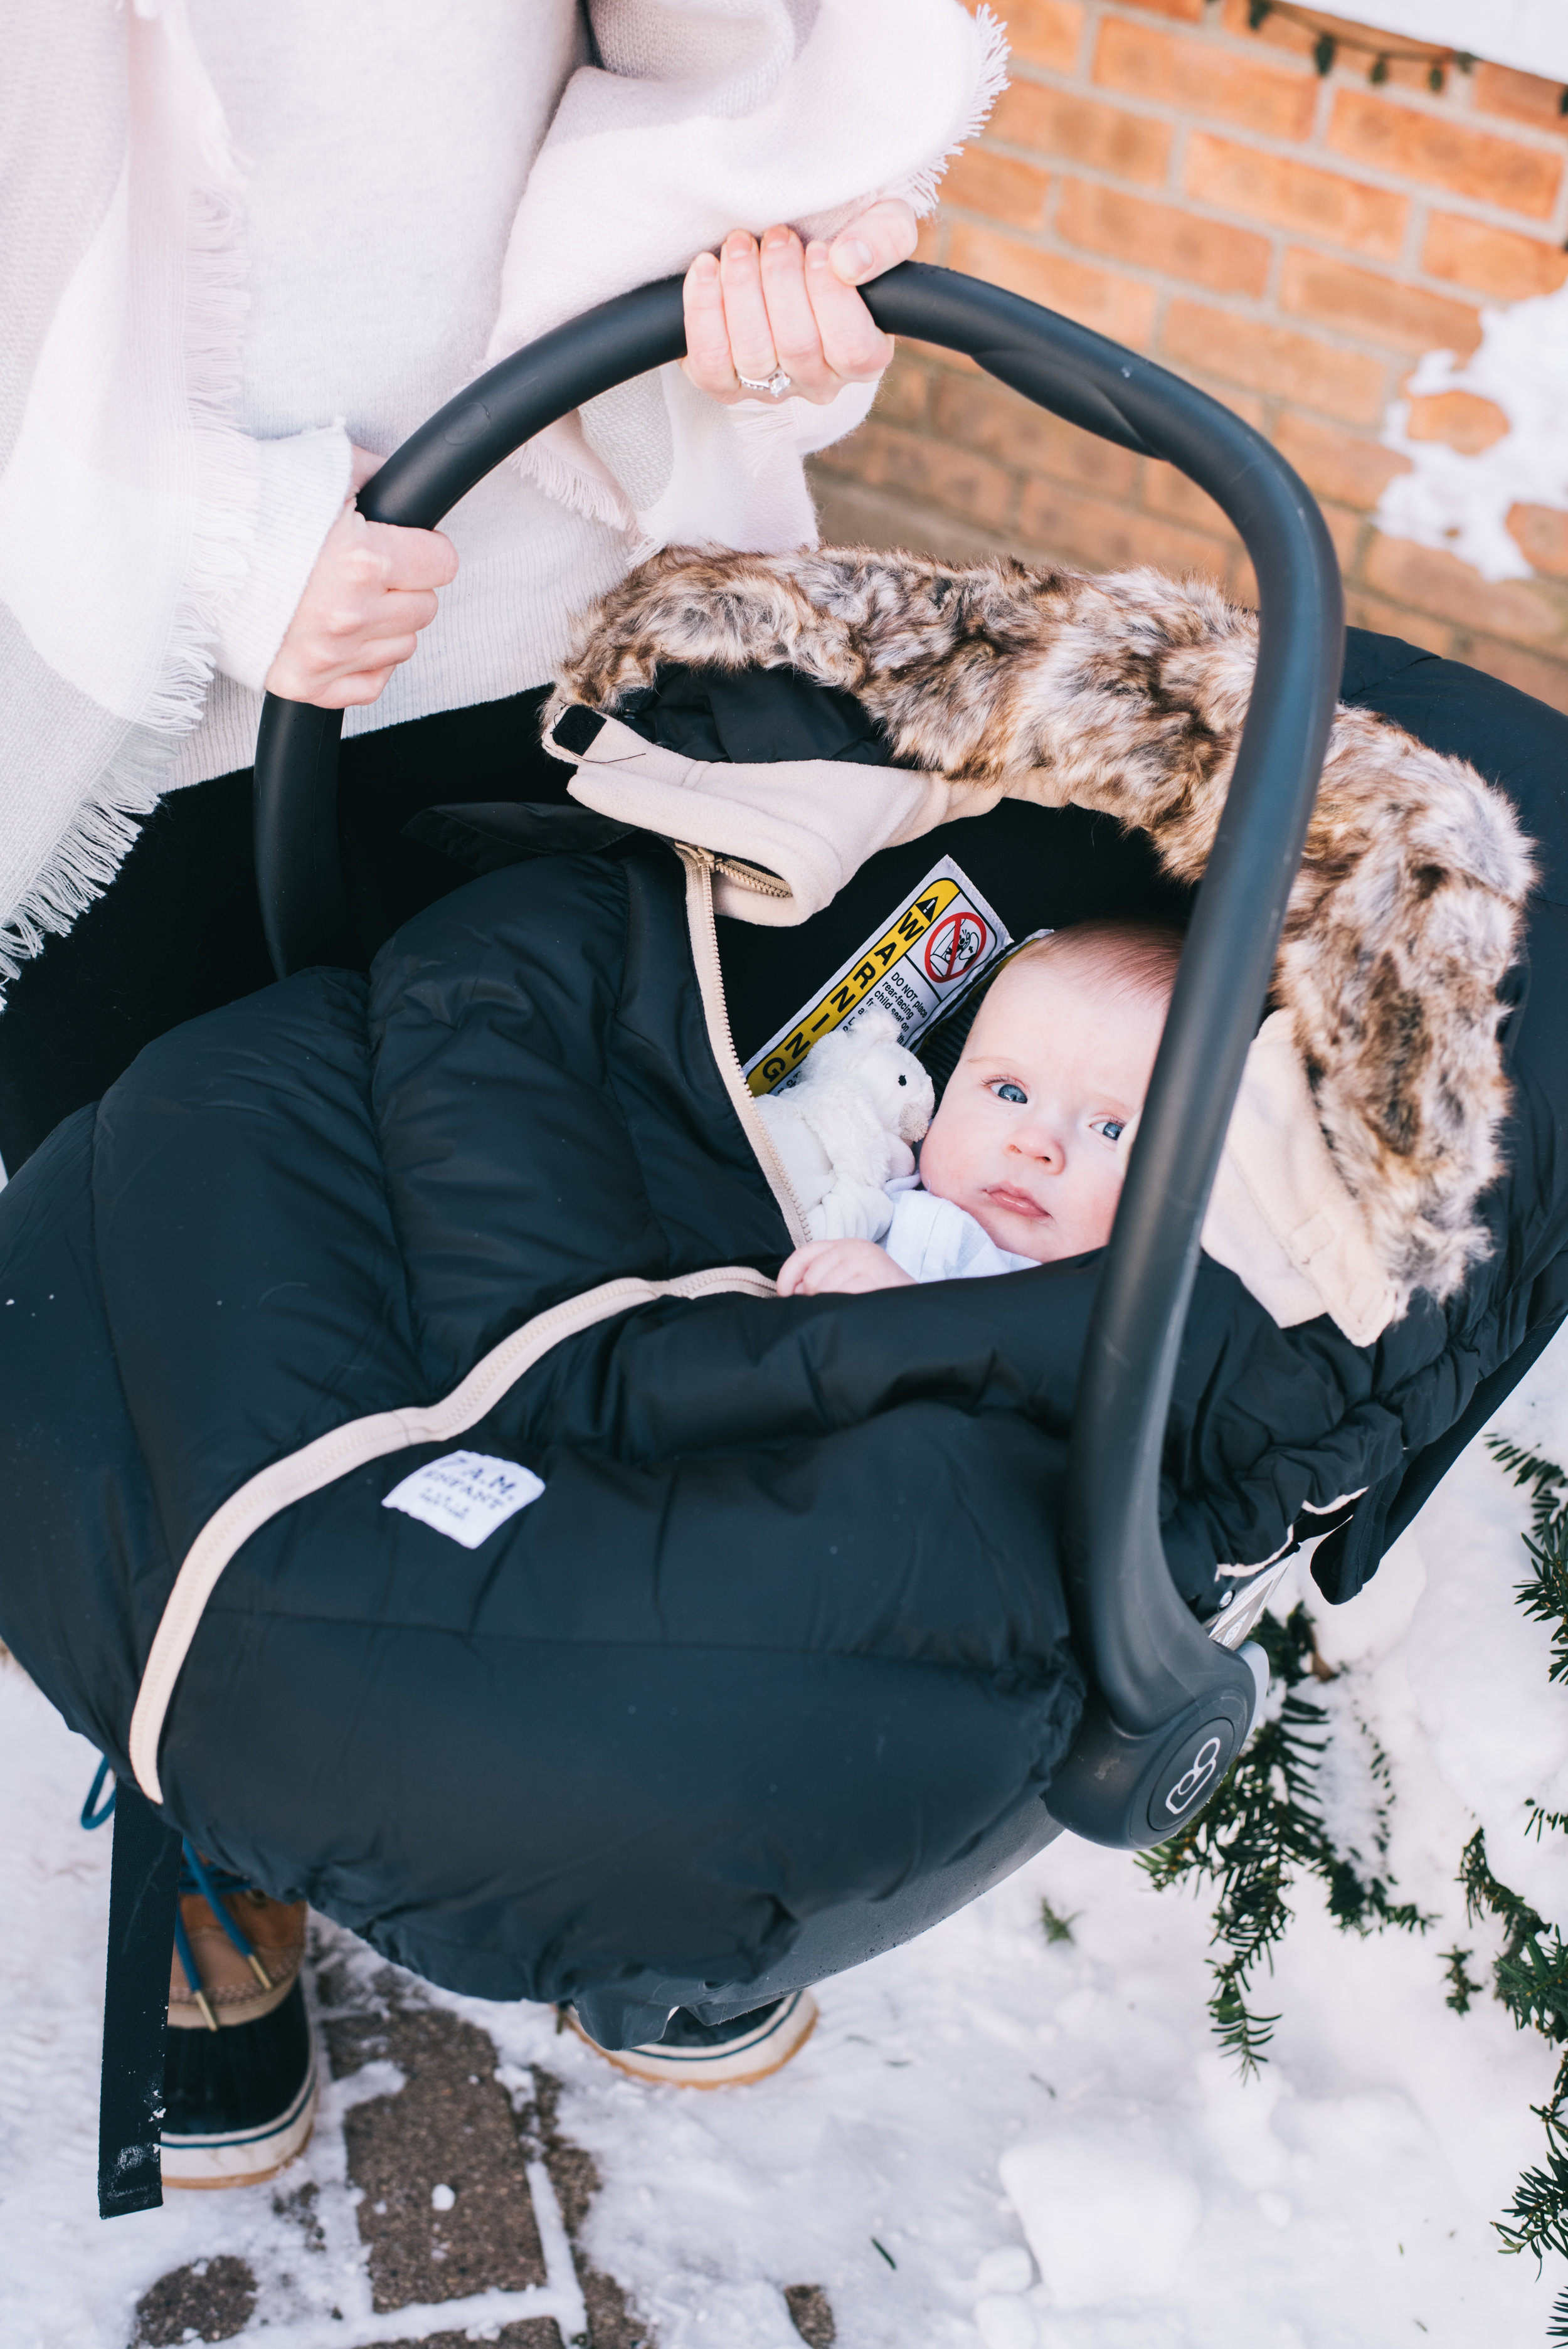 7AM Car Seat Cover - Coming Soon!